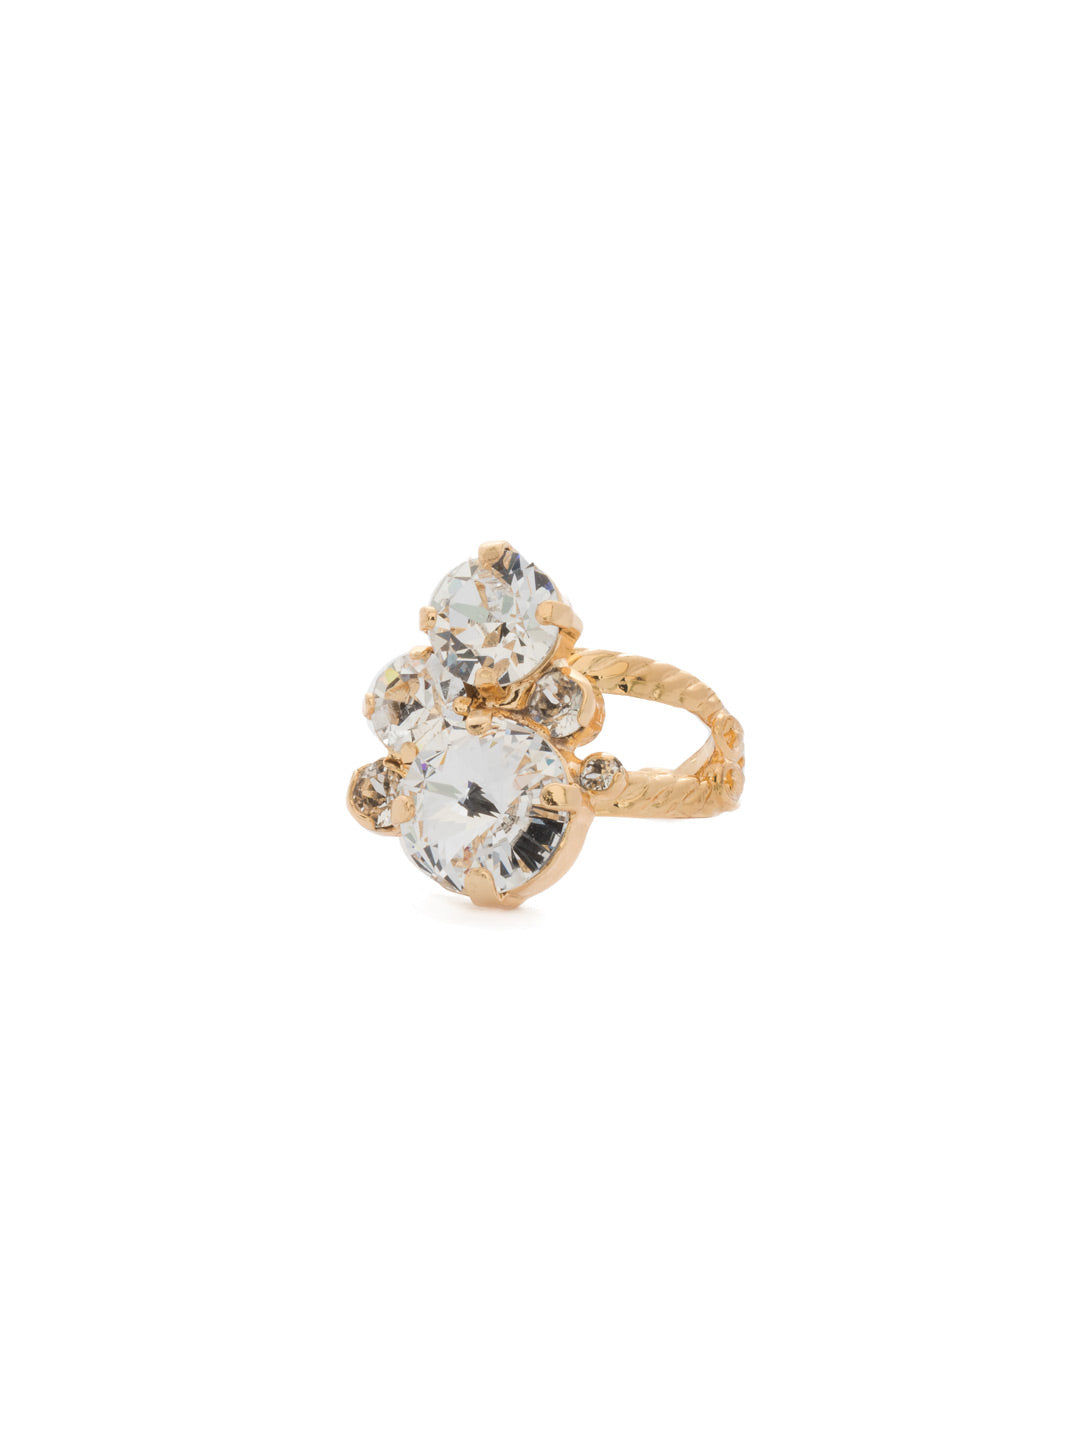 Crystal Assorted Rounds Ring - RDB11BGCRY